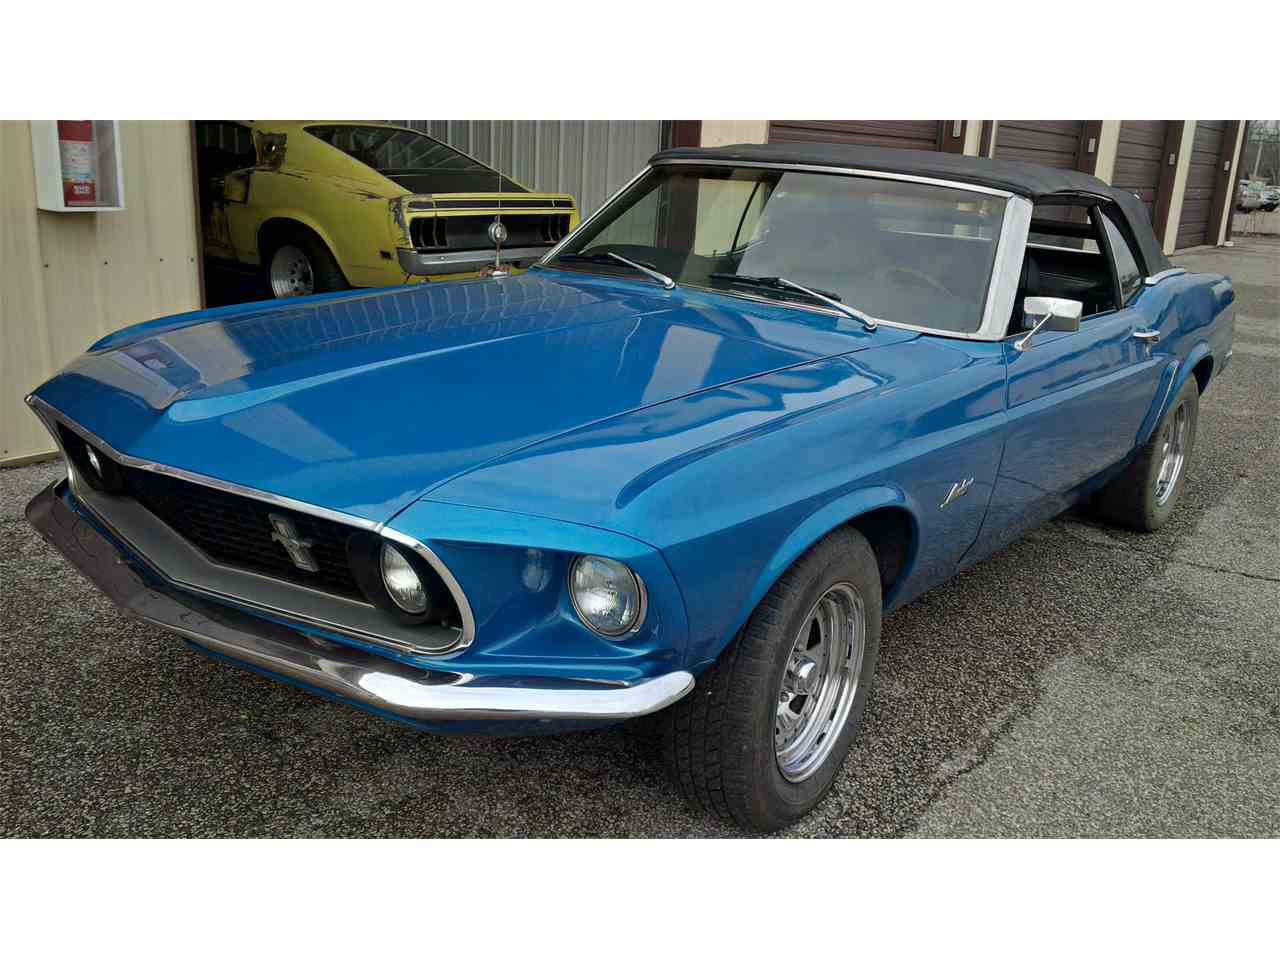 Large Picture of '69 Mustang - $24,900.00 - L1HU